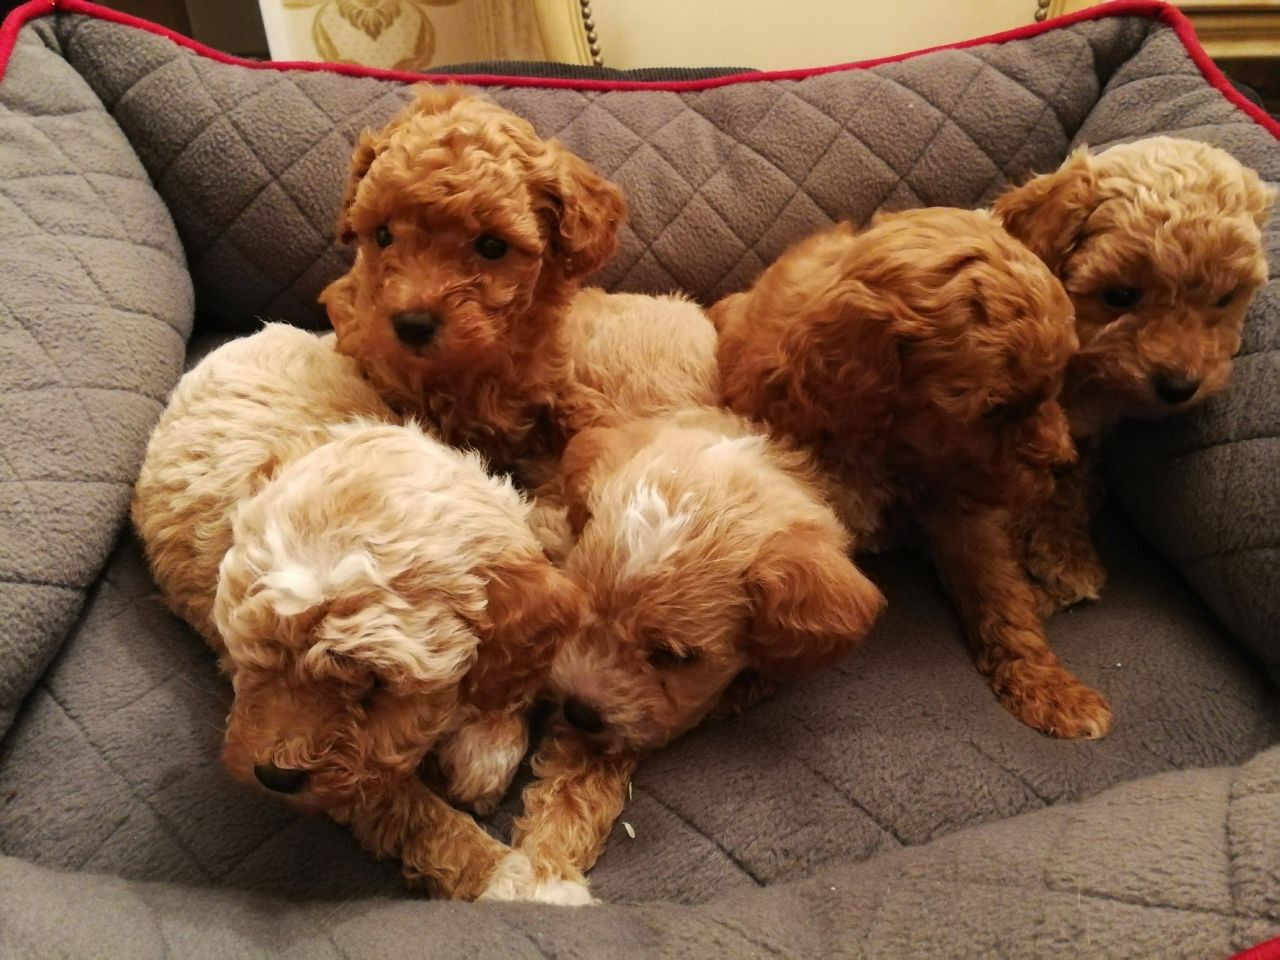 Poodle Puppies For Sale | Boise, ID #139376 | Petzlover